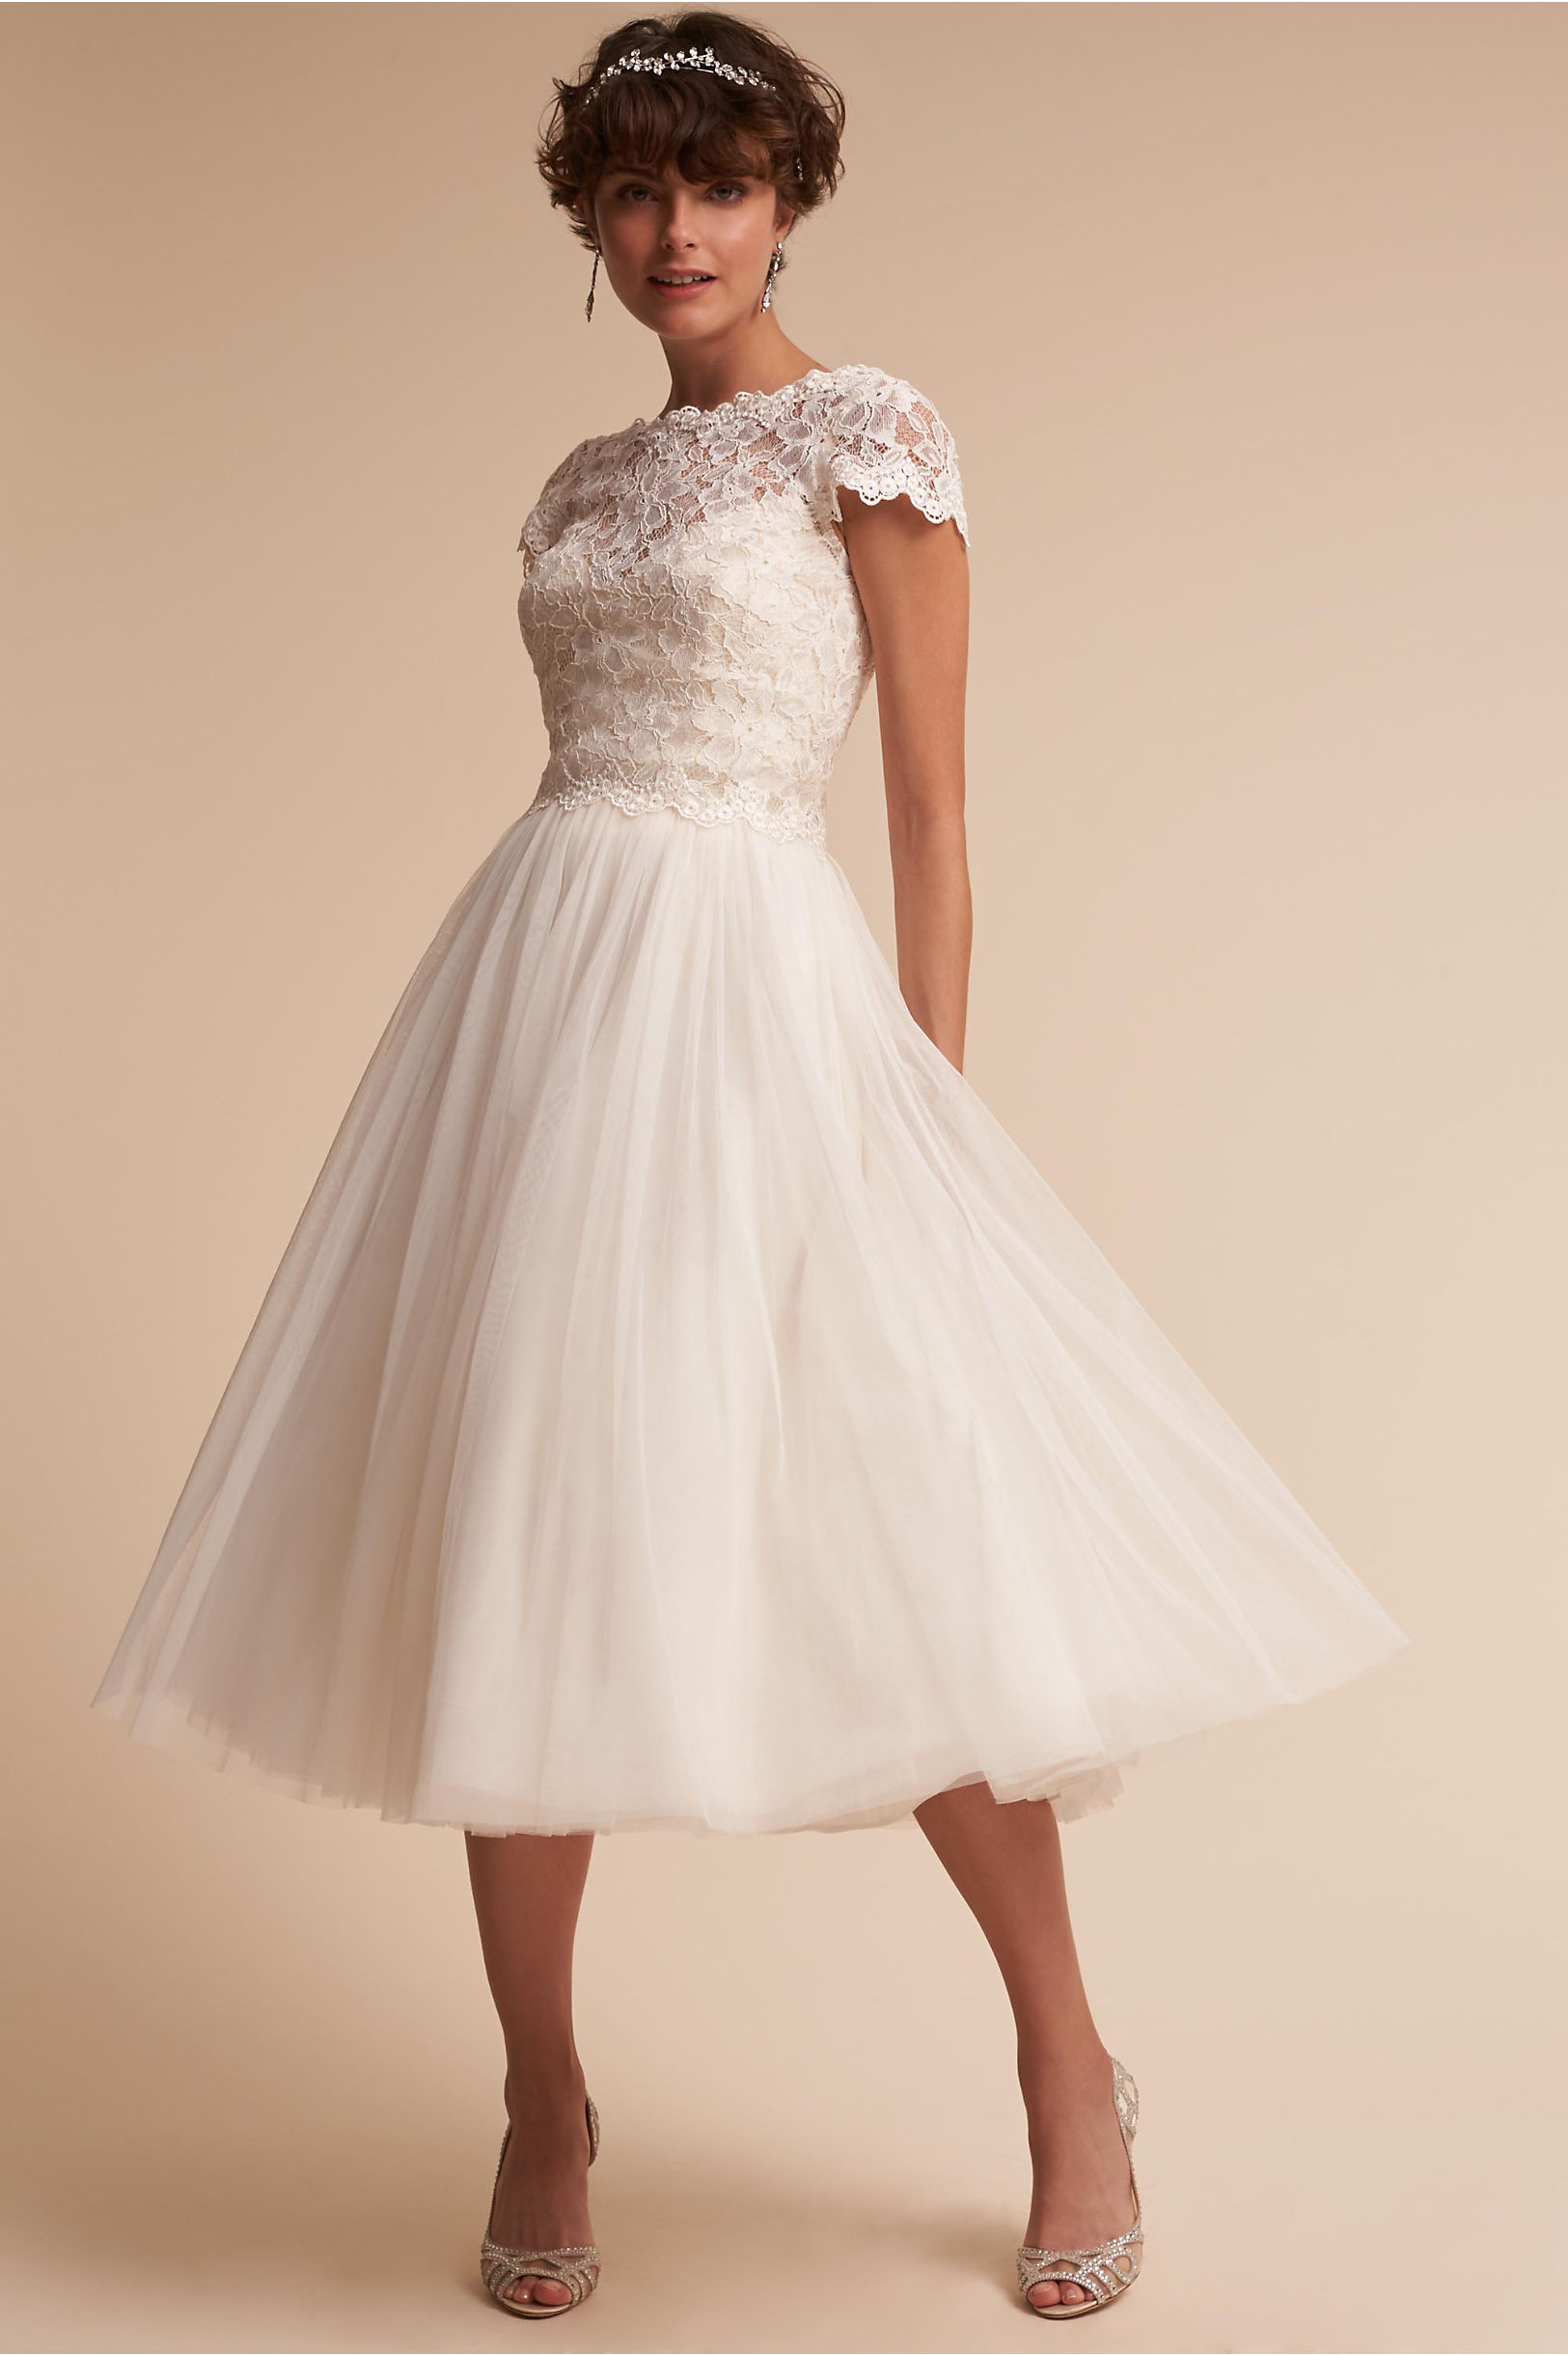 Vintage Inspired Wedding Dress | Vintage Style Wedding Dresses Sydney Top & Marcie Skirt  AT vintagedancer.com